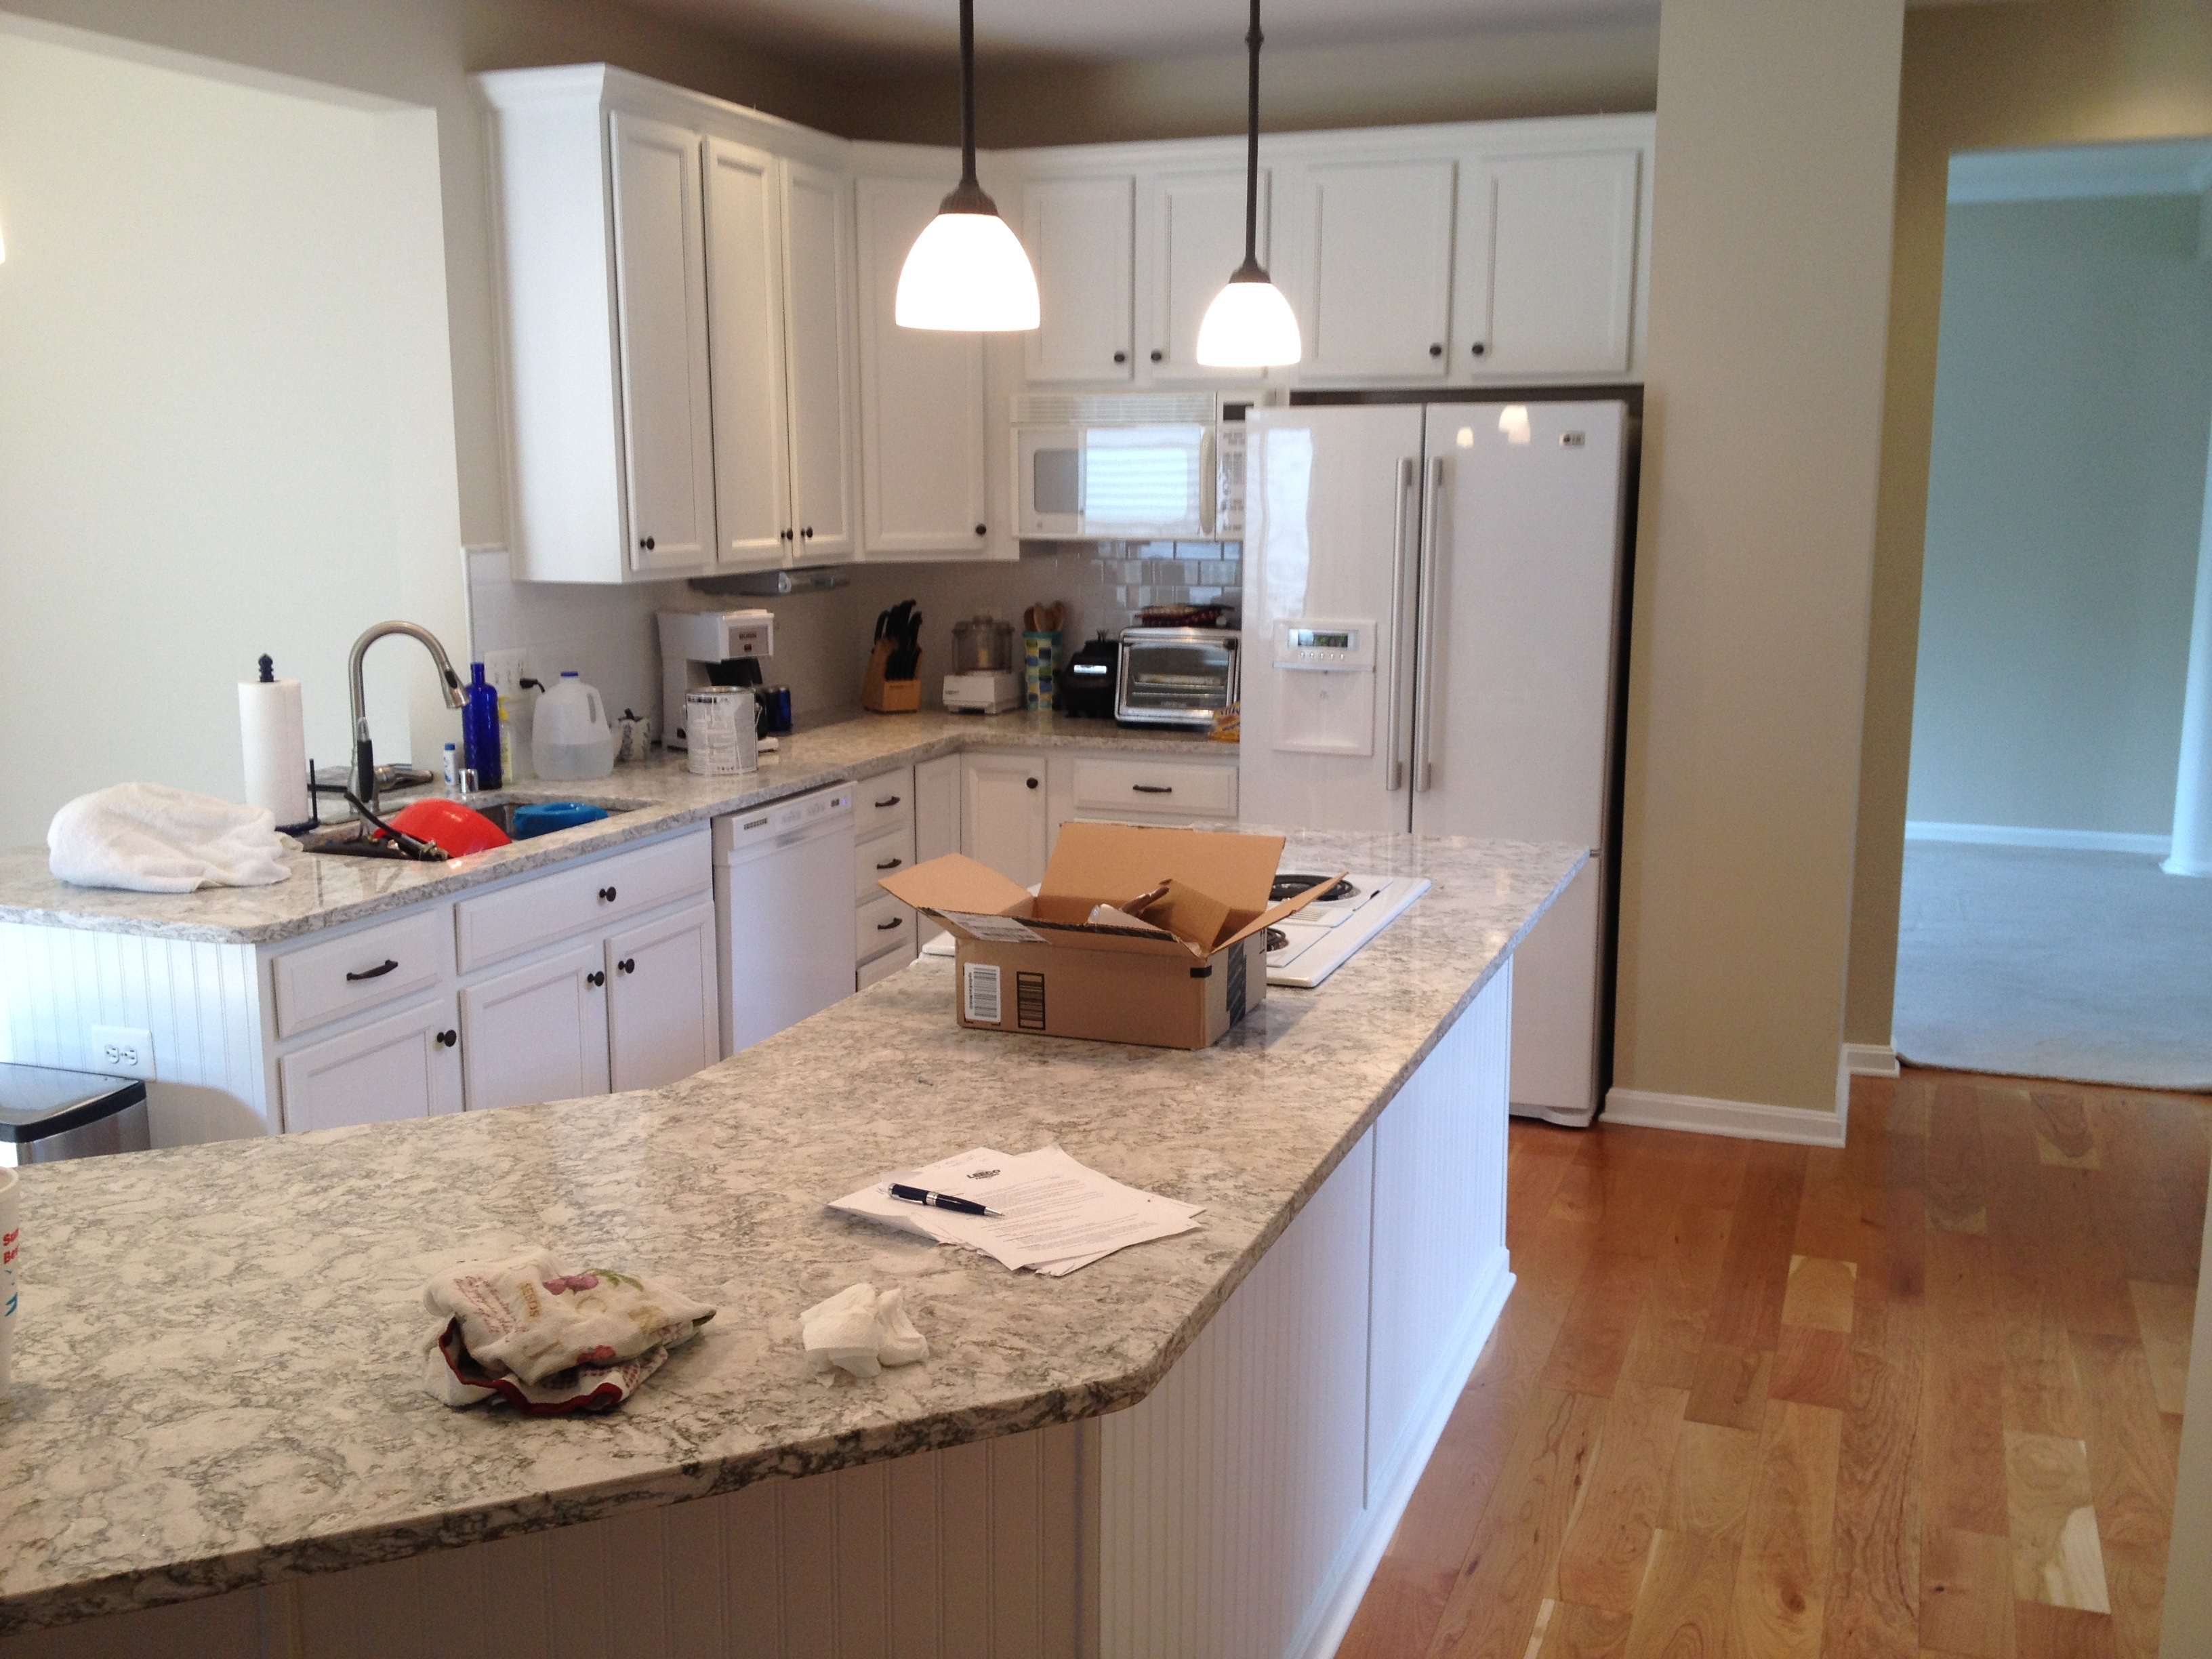 kitchen cabinet painting kitchen cabinet staining and refinishing stripping existing woodwork staining new or existing surfaces clear finish coats